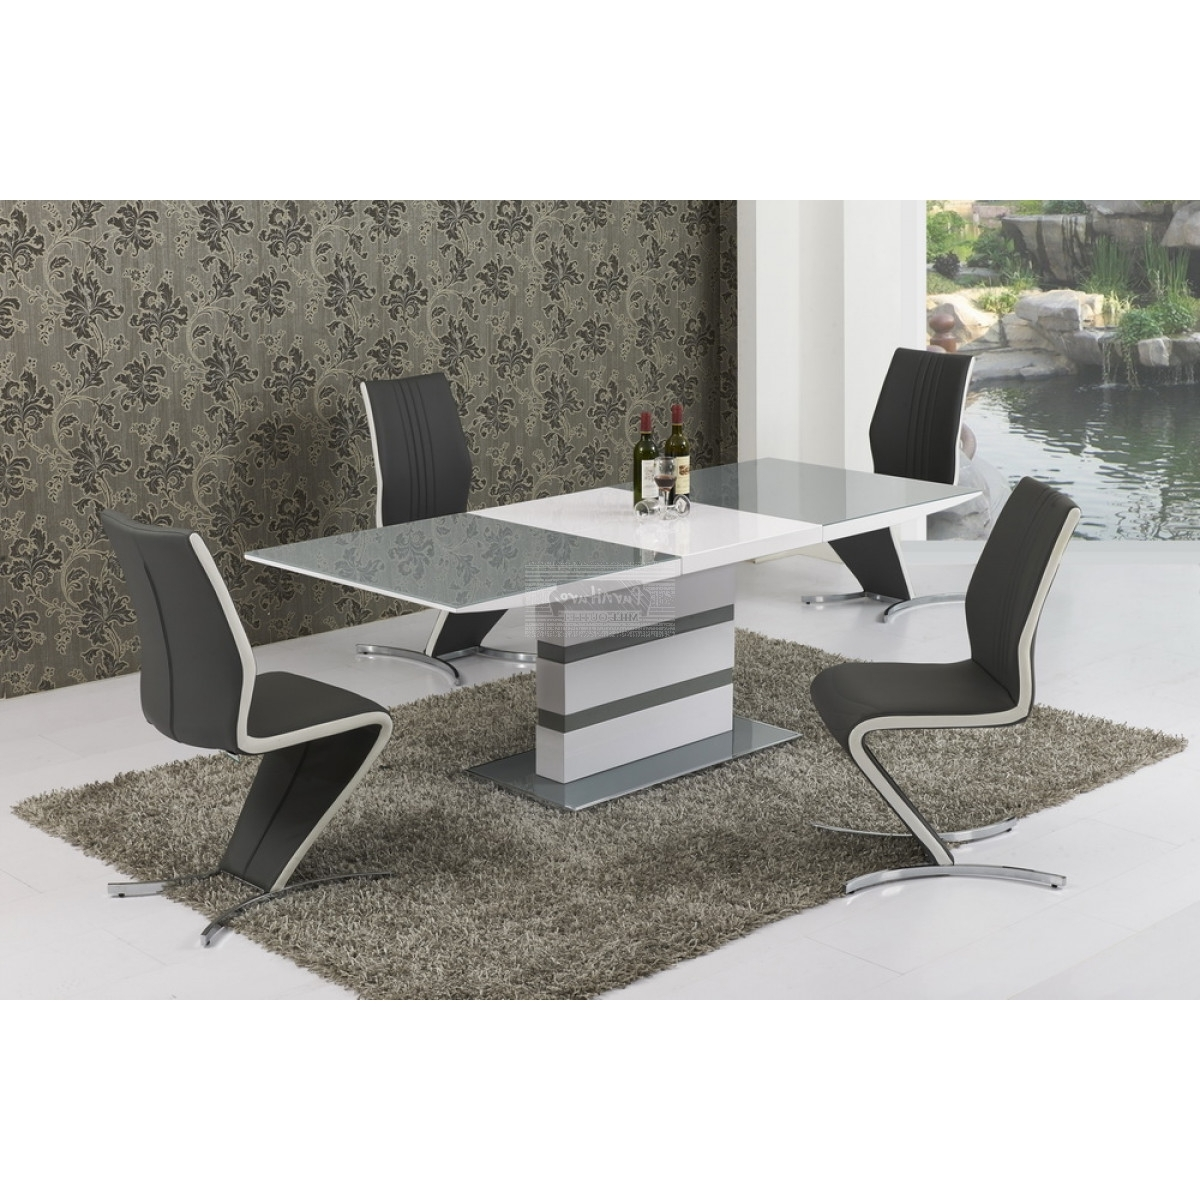 Isabella Dining Tables intended for Favorite Arctic Grey Glass And White Gloss Extending Dining Table - 160Cm To